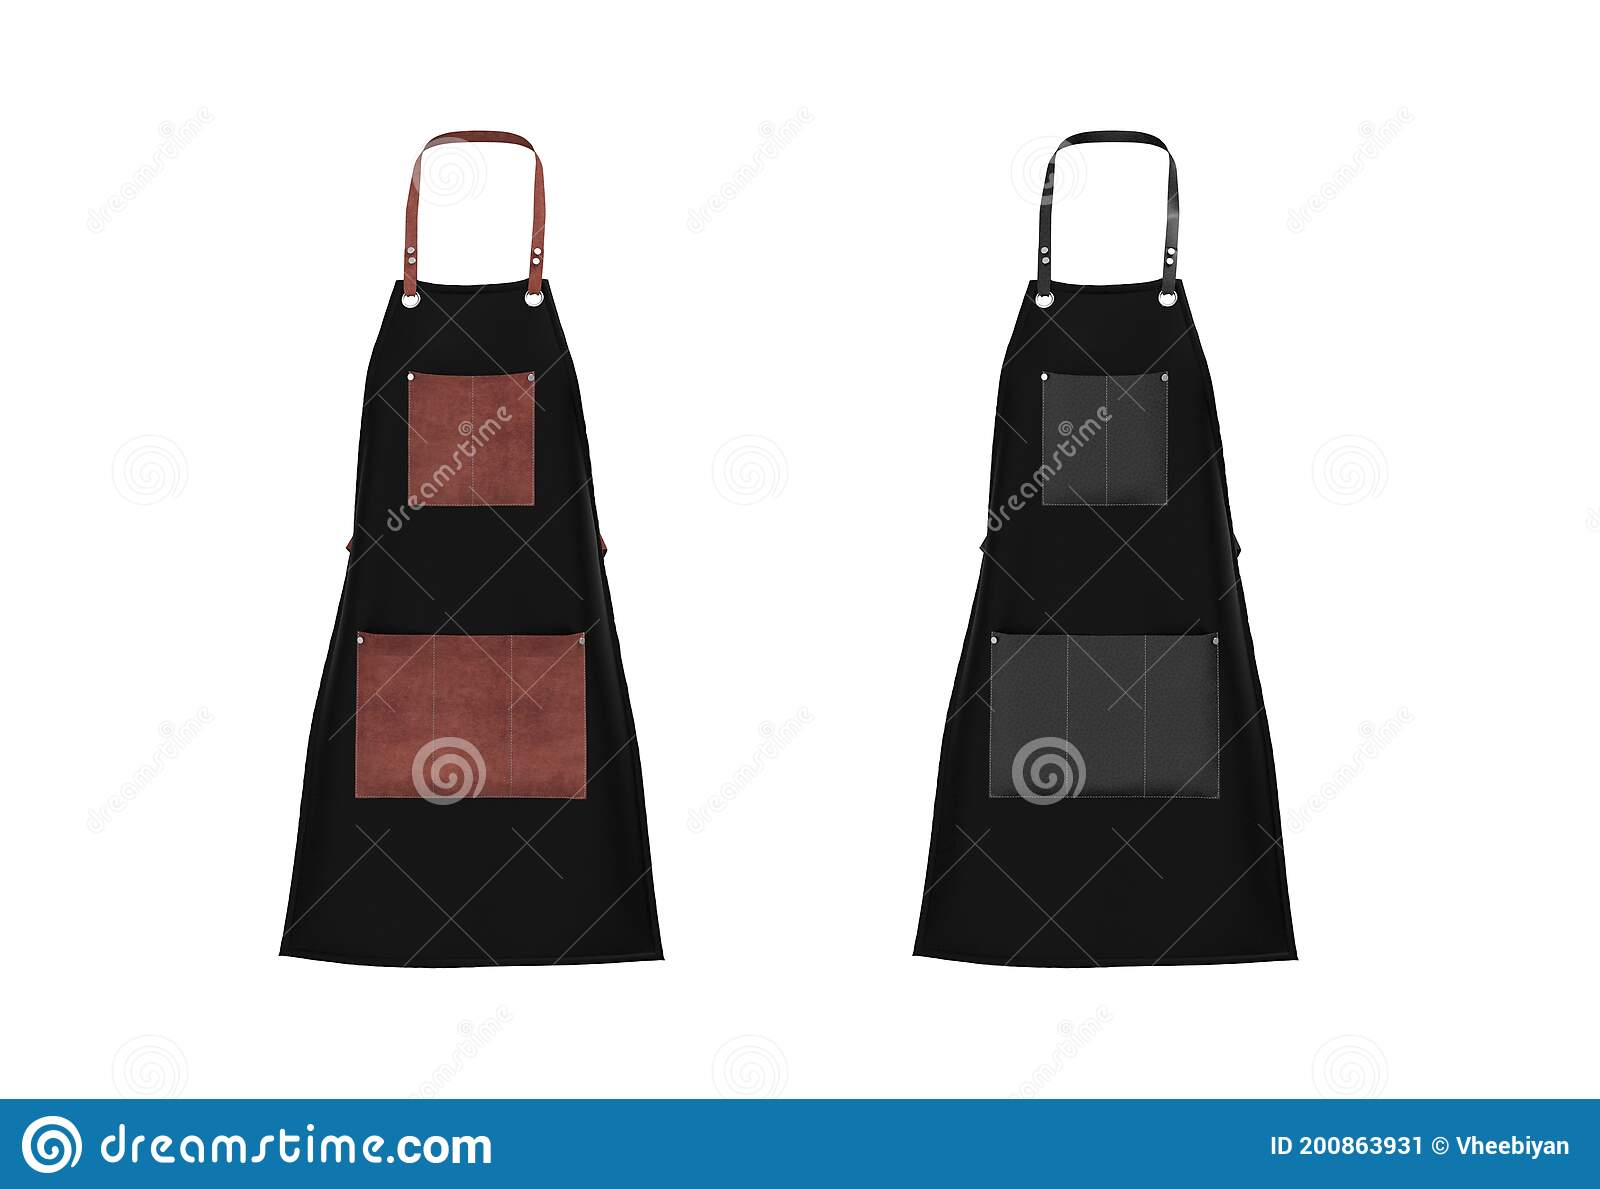 Psd files consist smart object. Leather Aprons Mock Up Isolated On White Stock Illustration Illustration Of Black Clean 200863931